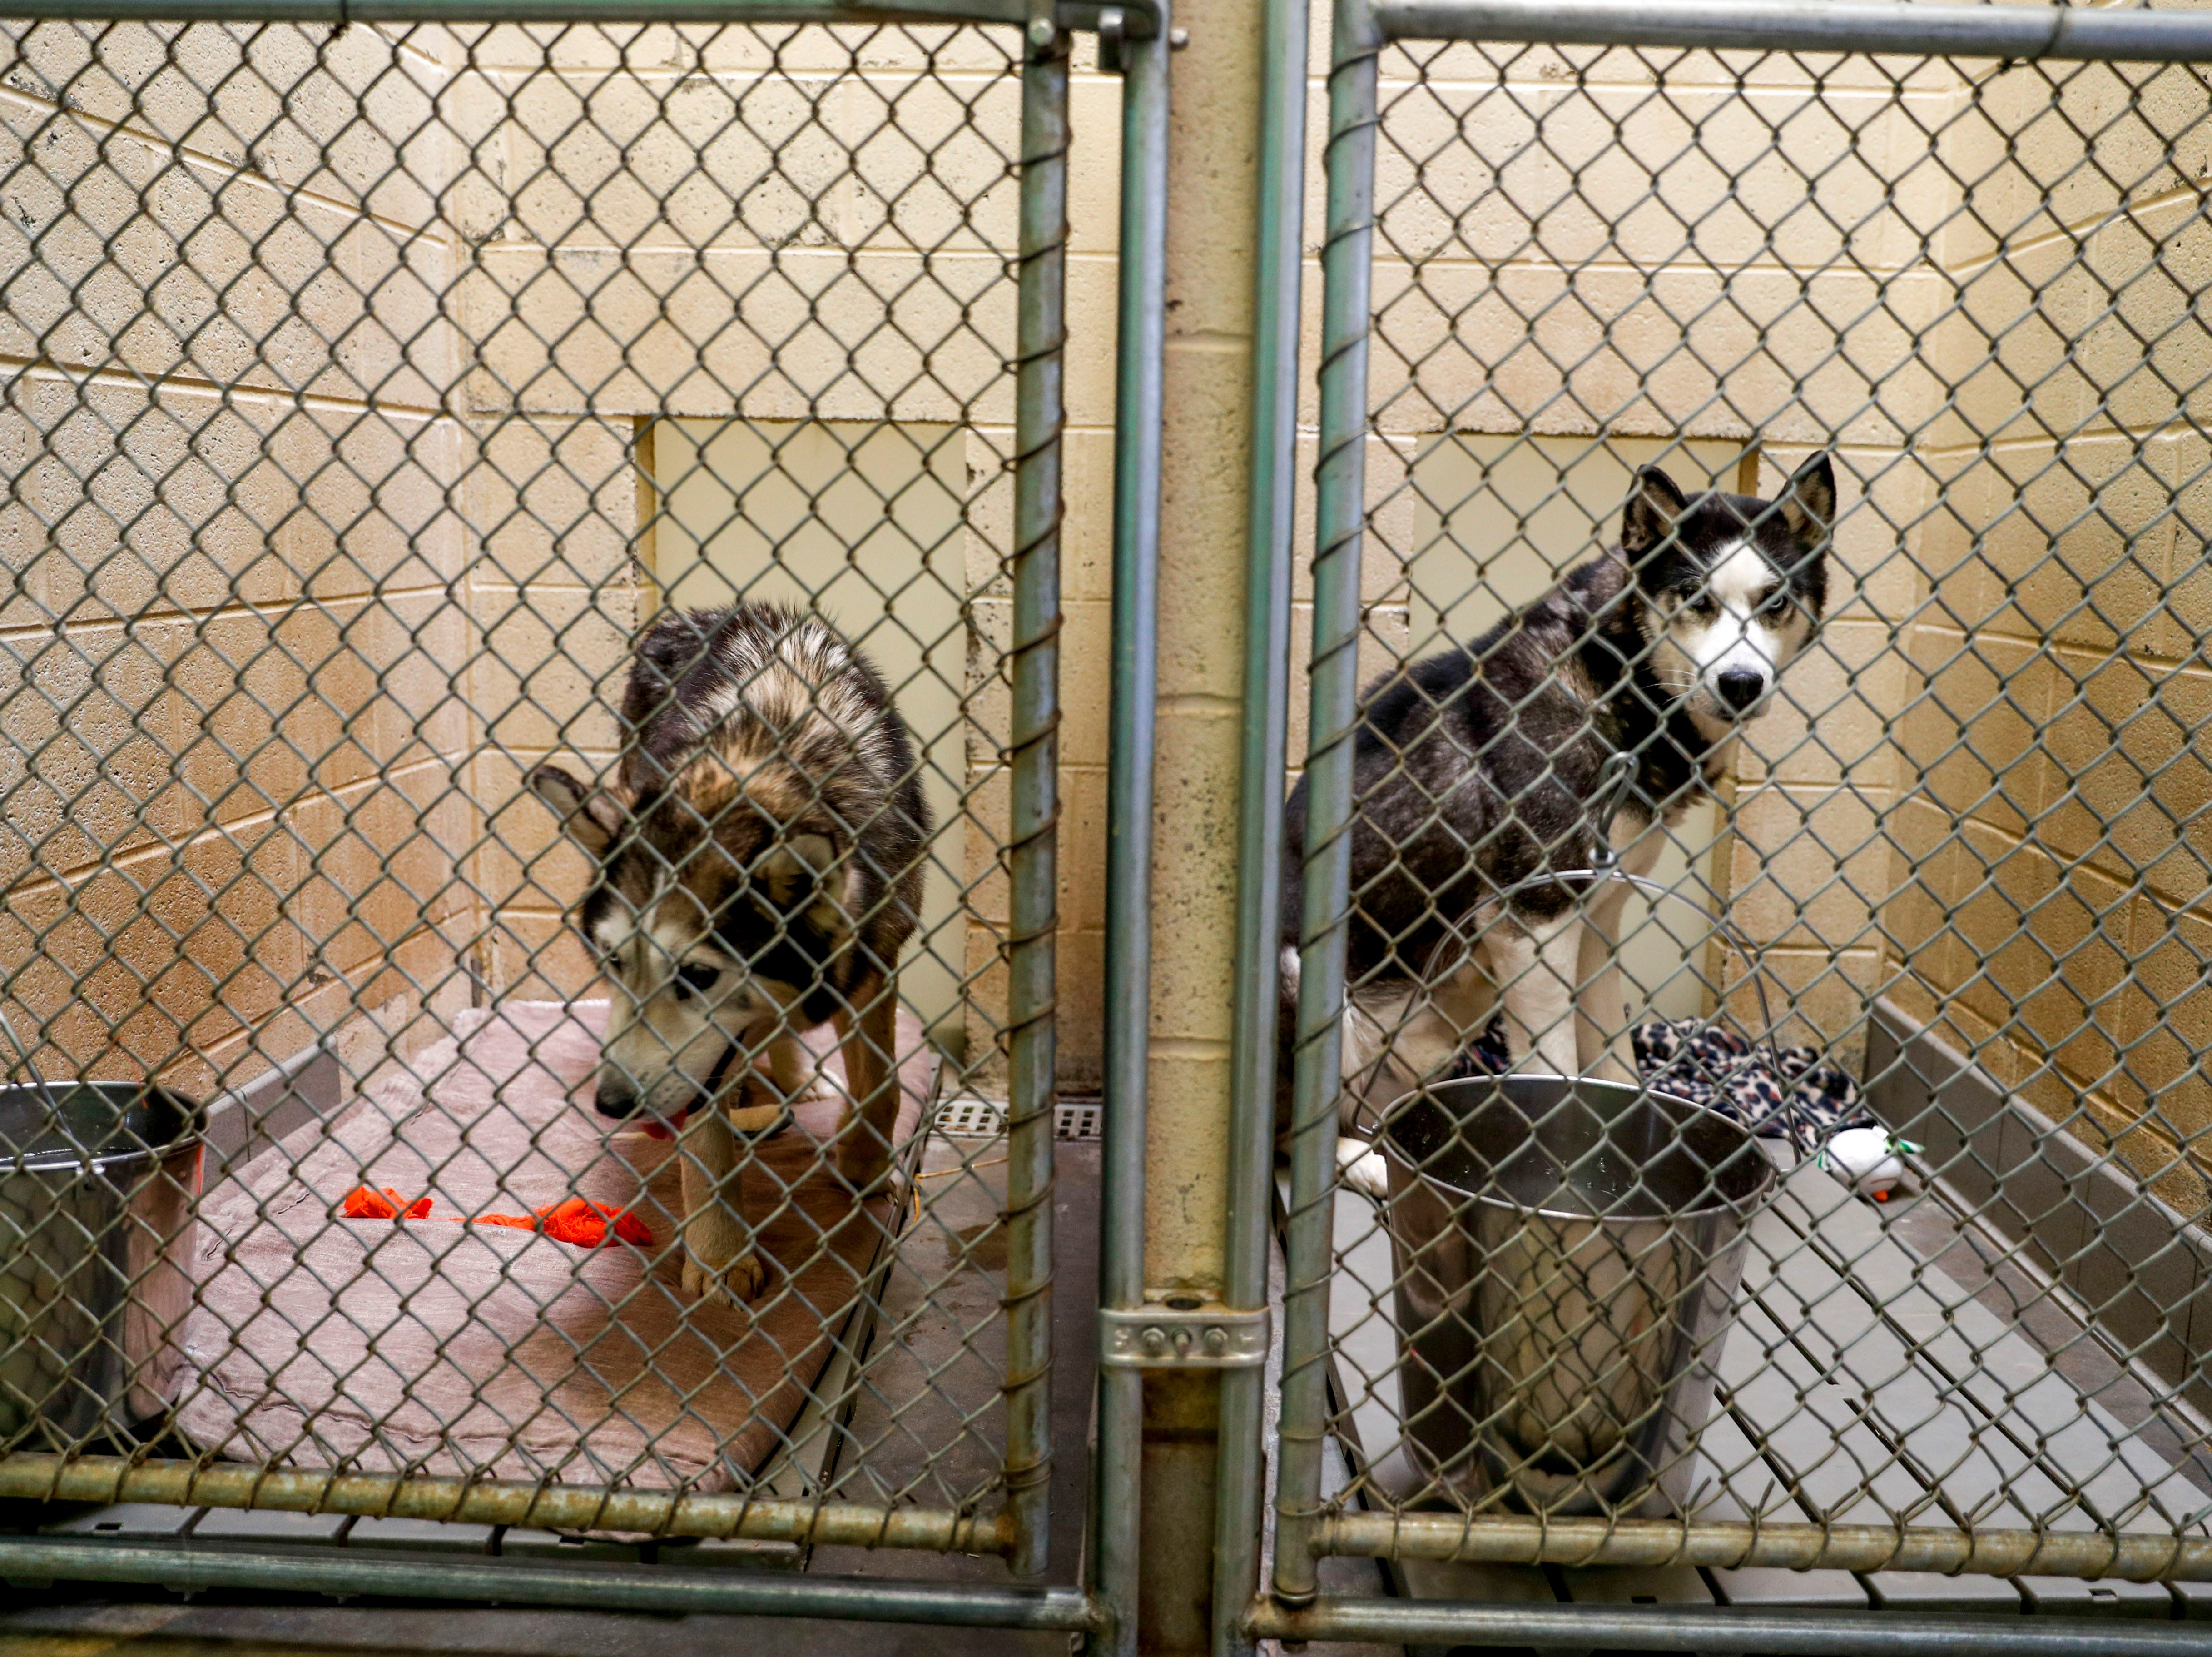 Thor, right, and a stray with no discernible name, both husky, await new owners to take them home at Montgomery County Animal Care and Control in Clarksville, Tenn., on Wednesday, March 13, 2019.